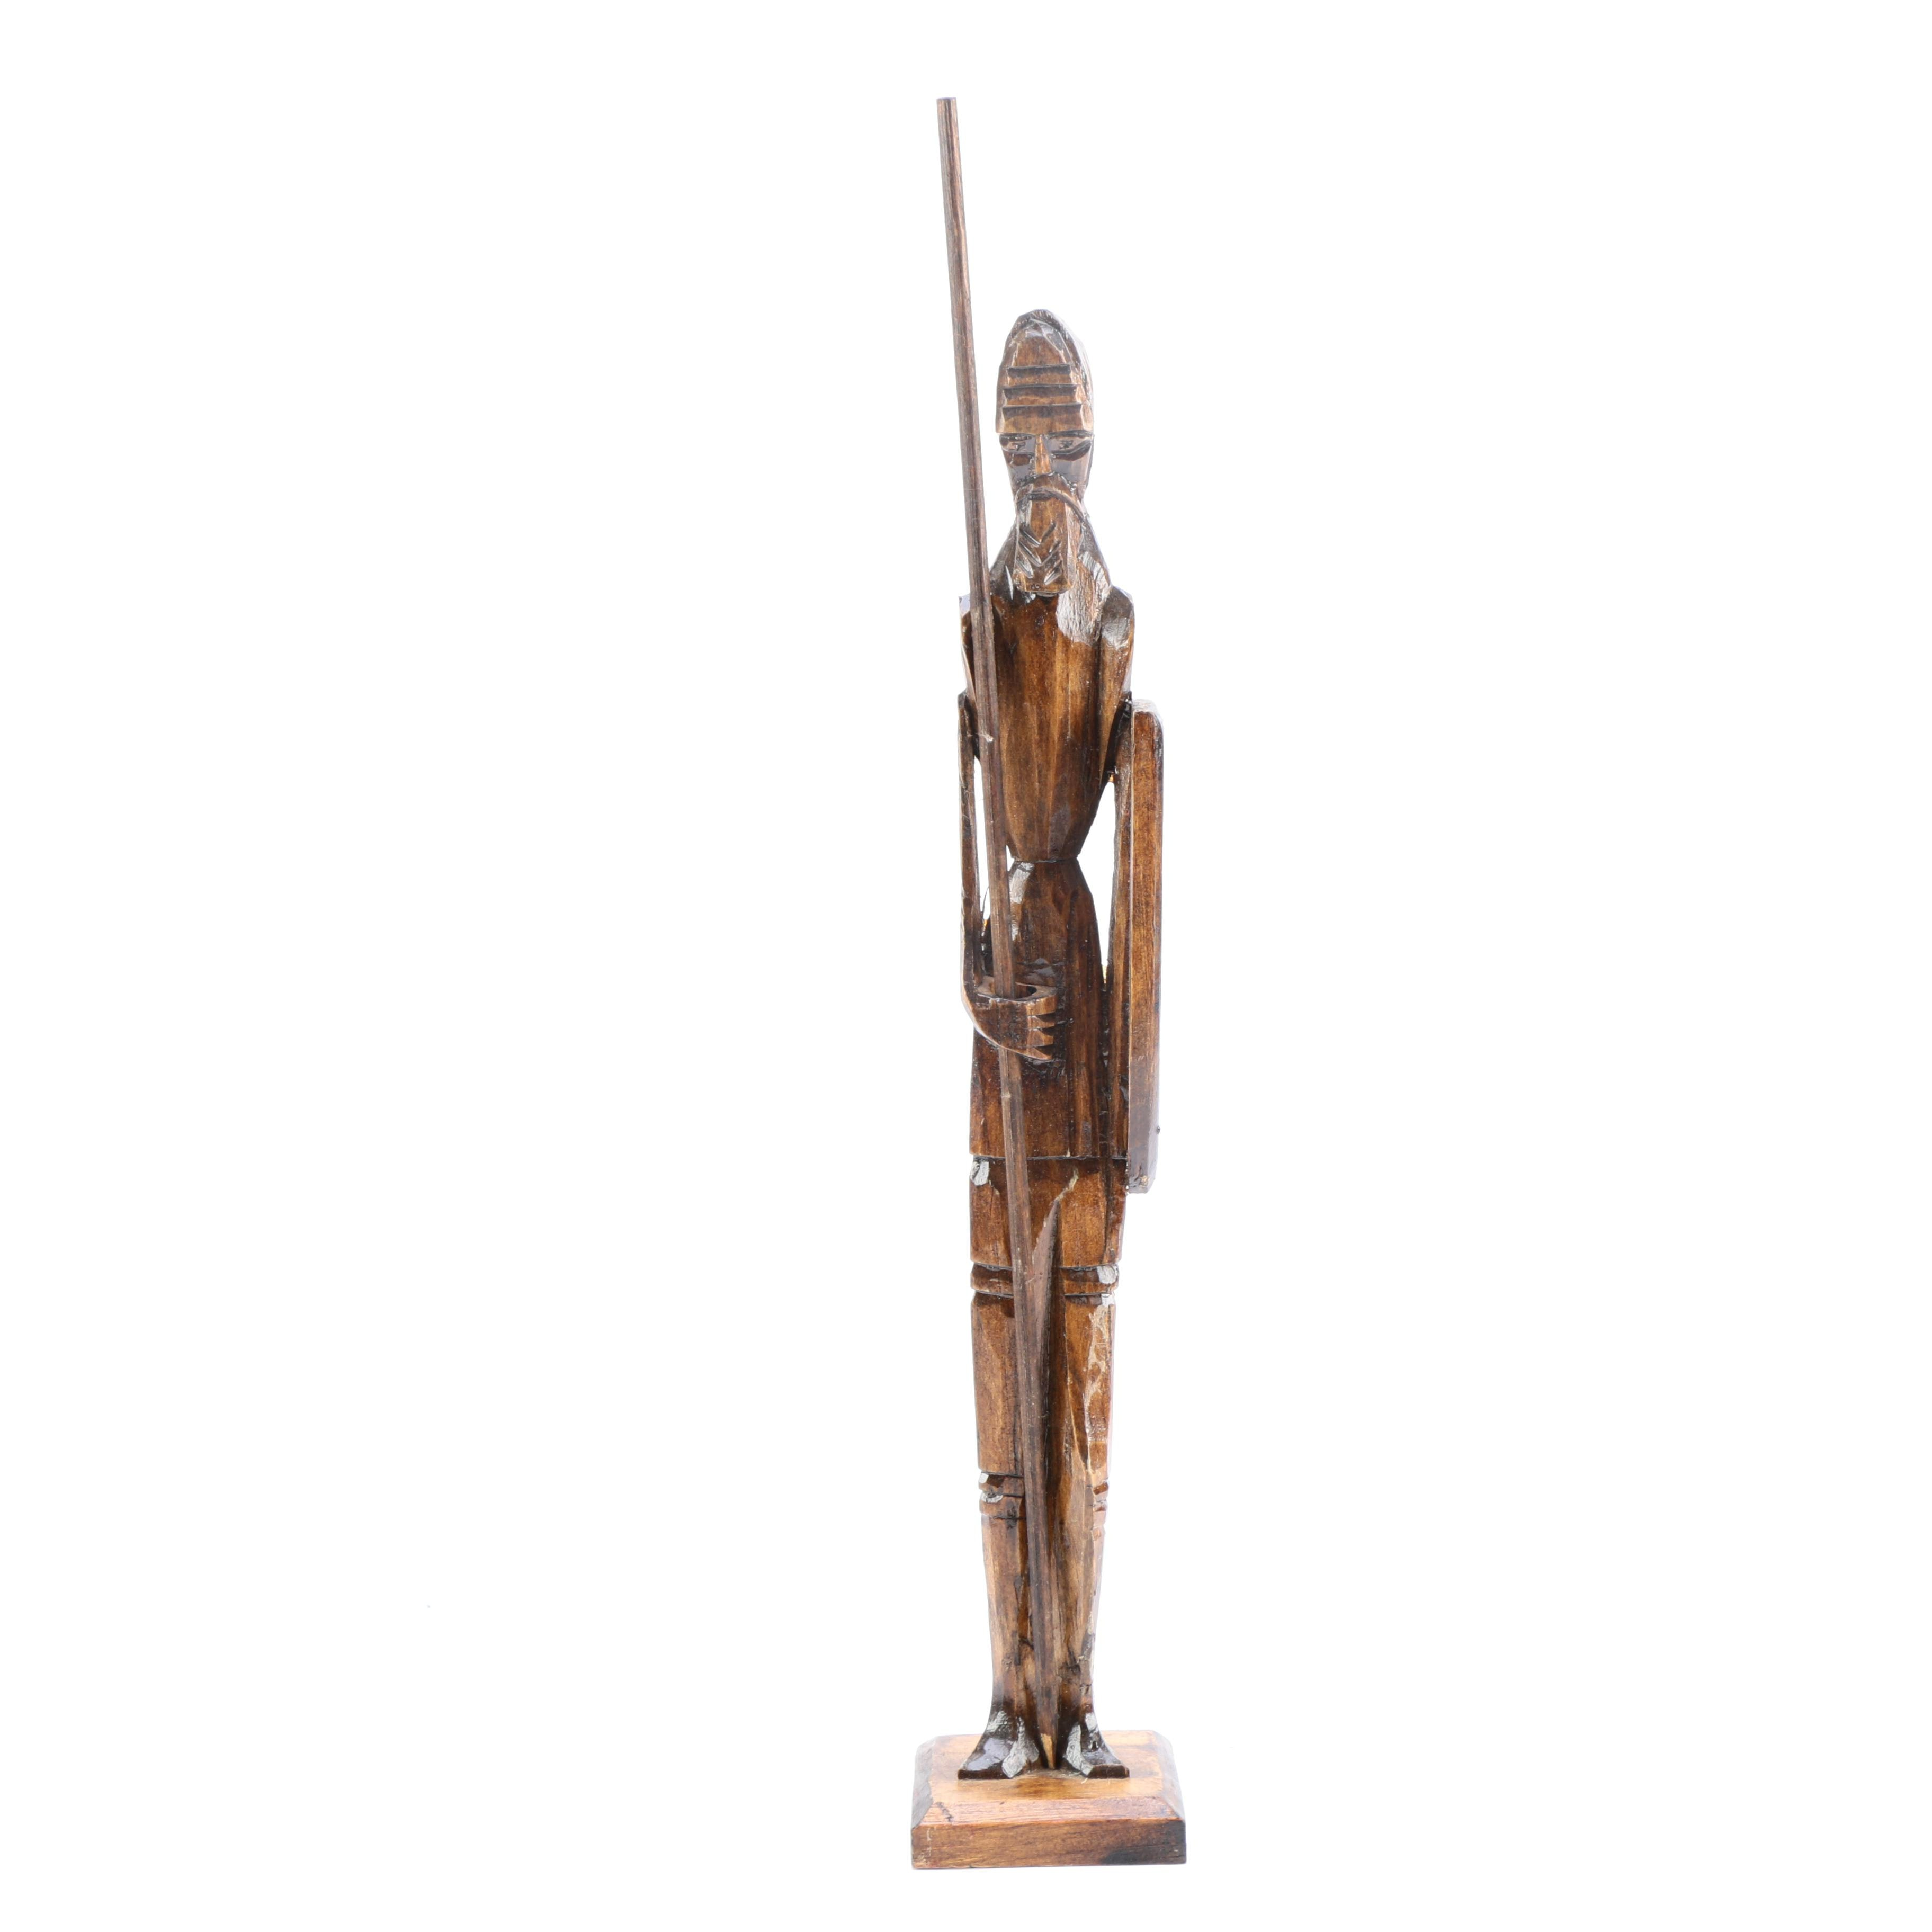 Carved Wooden Knight Figure